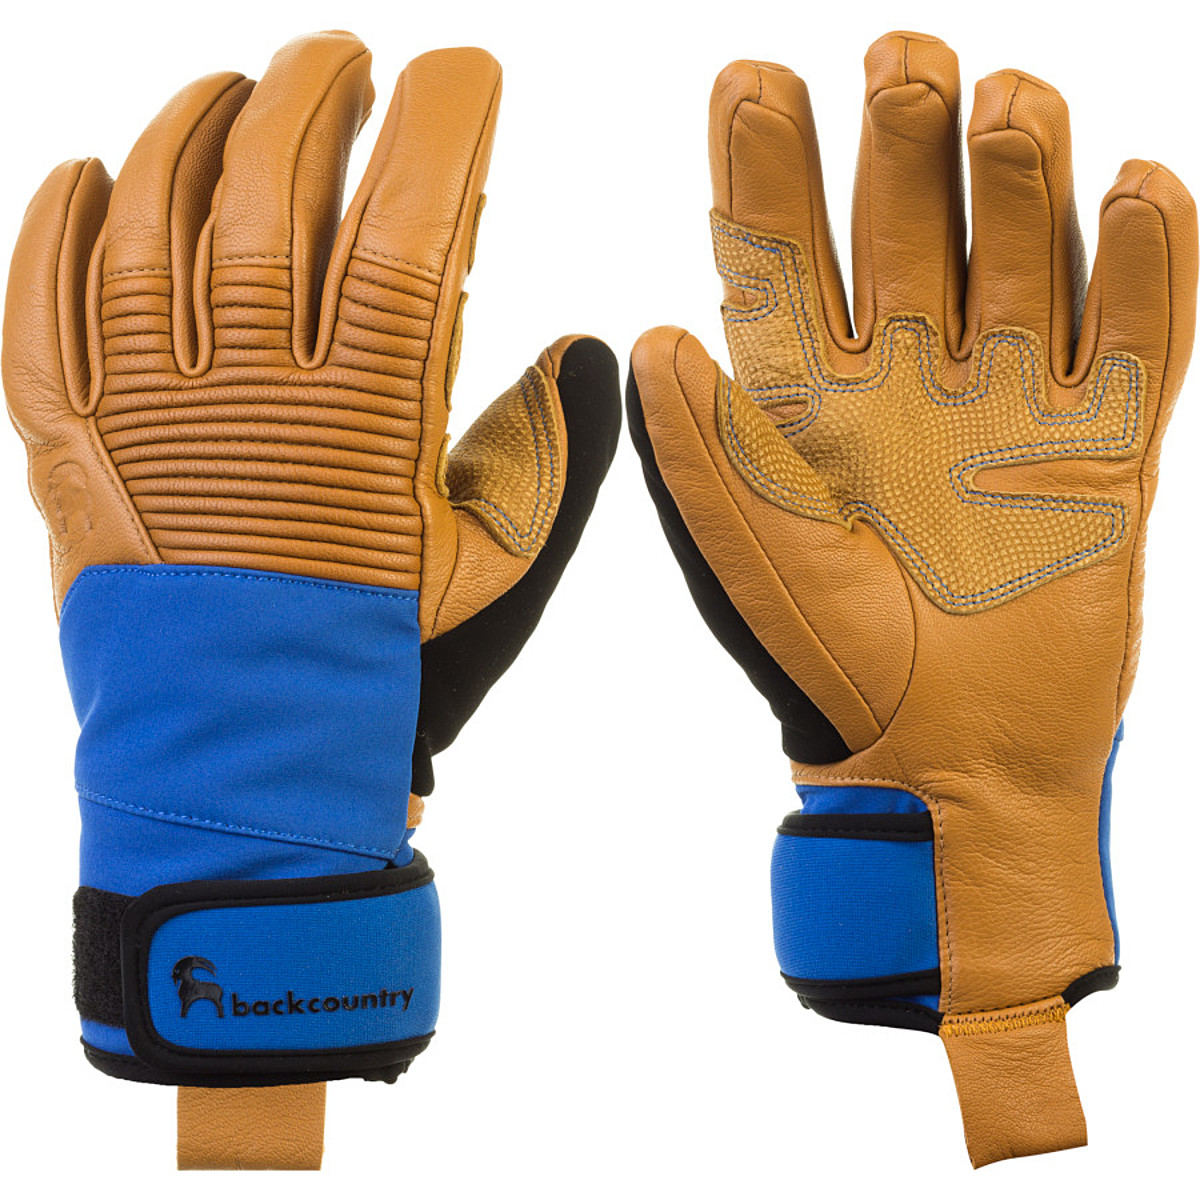 Backcountry.com Cottonwood Glove